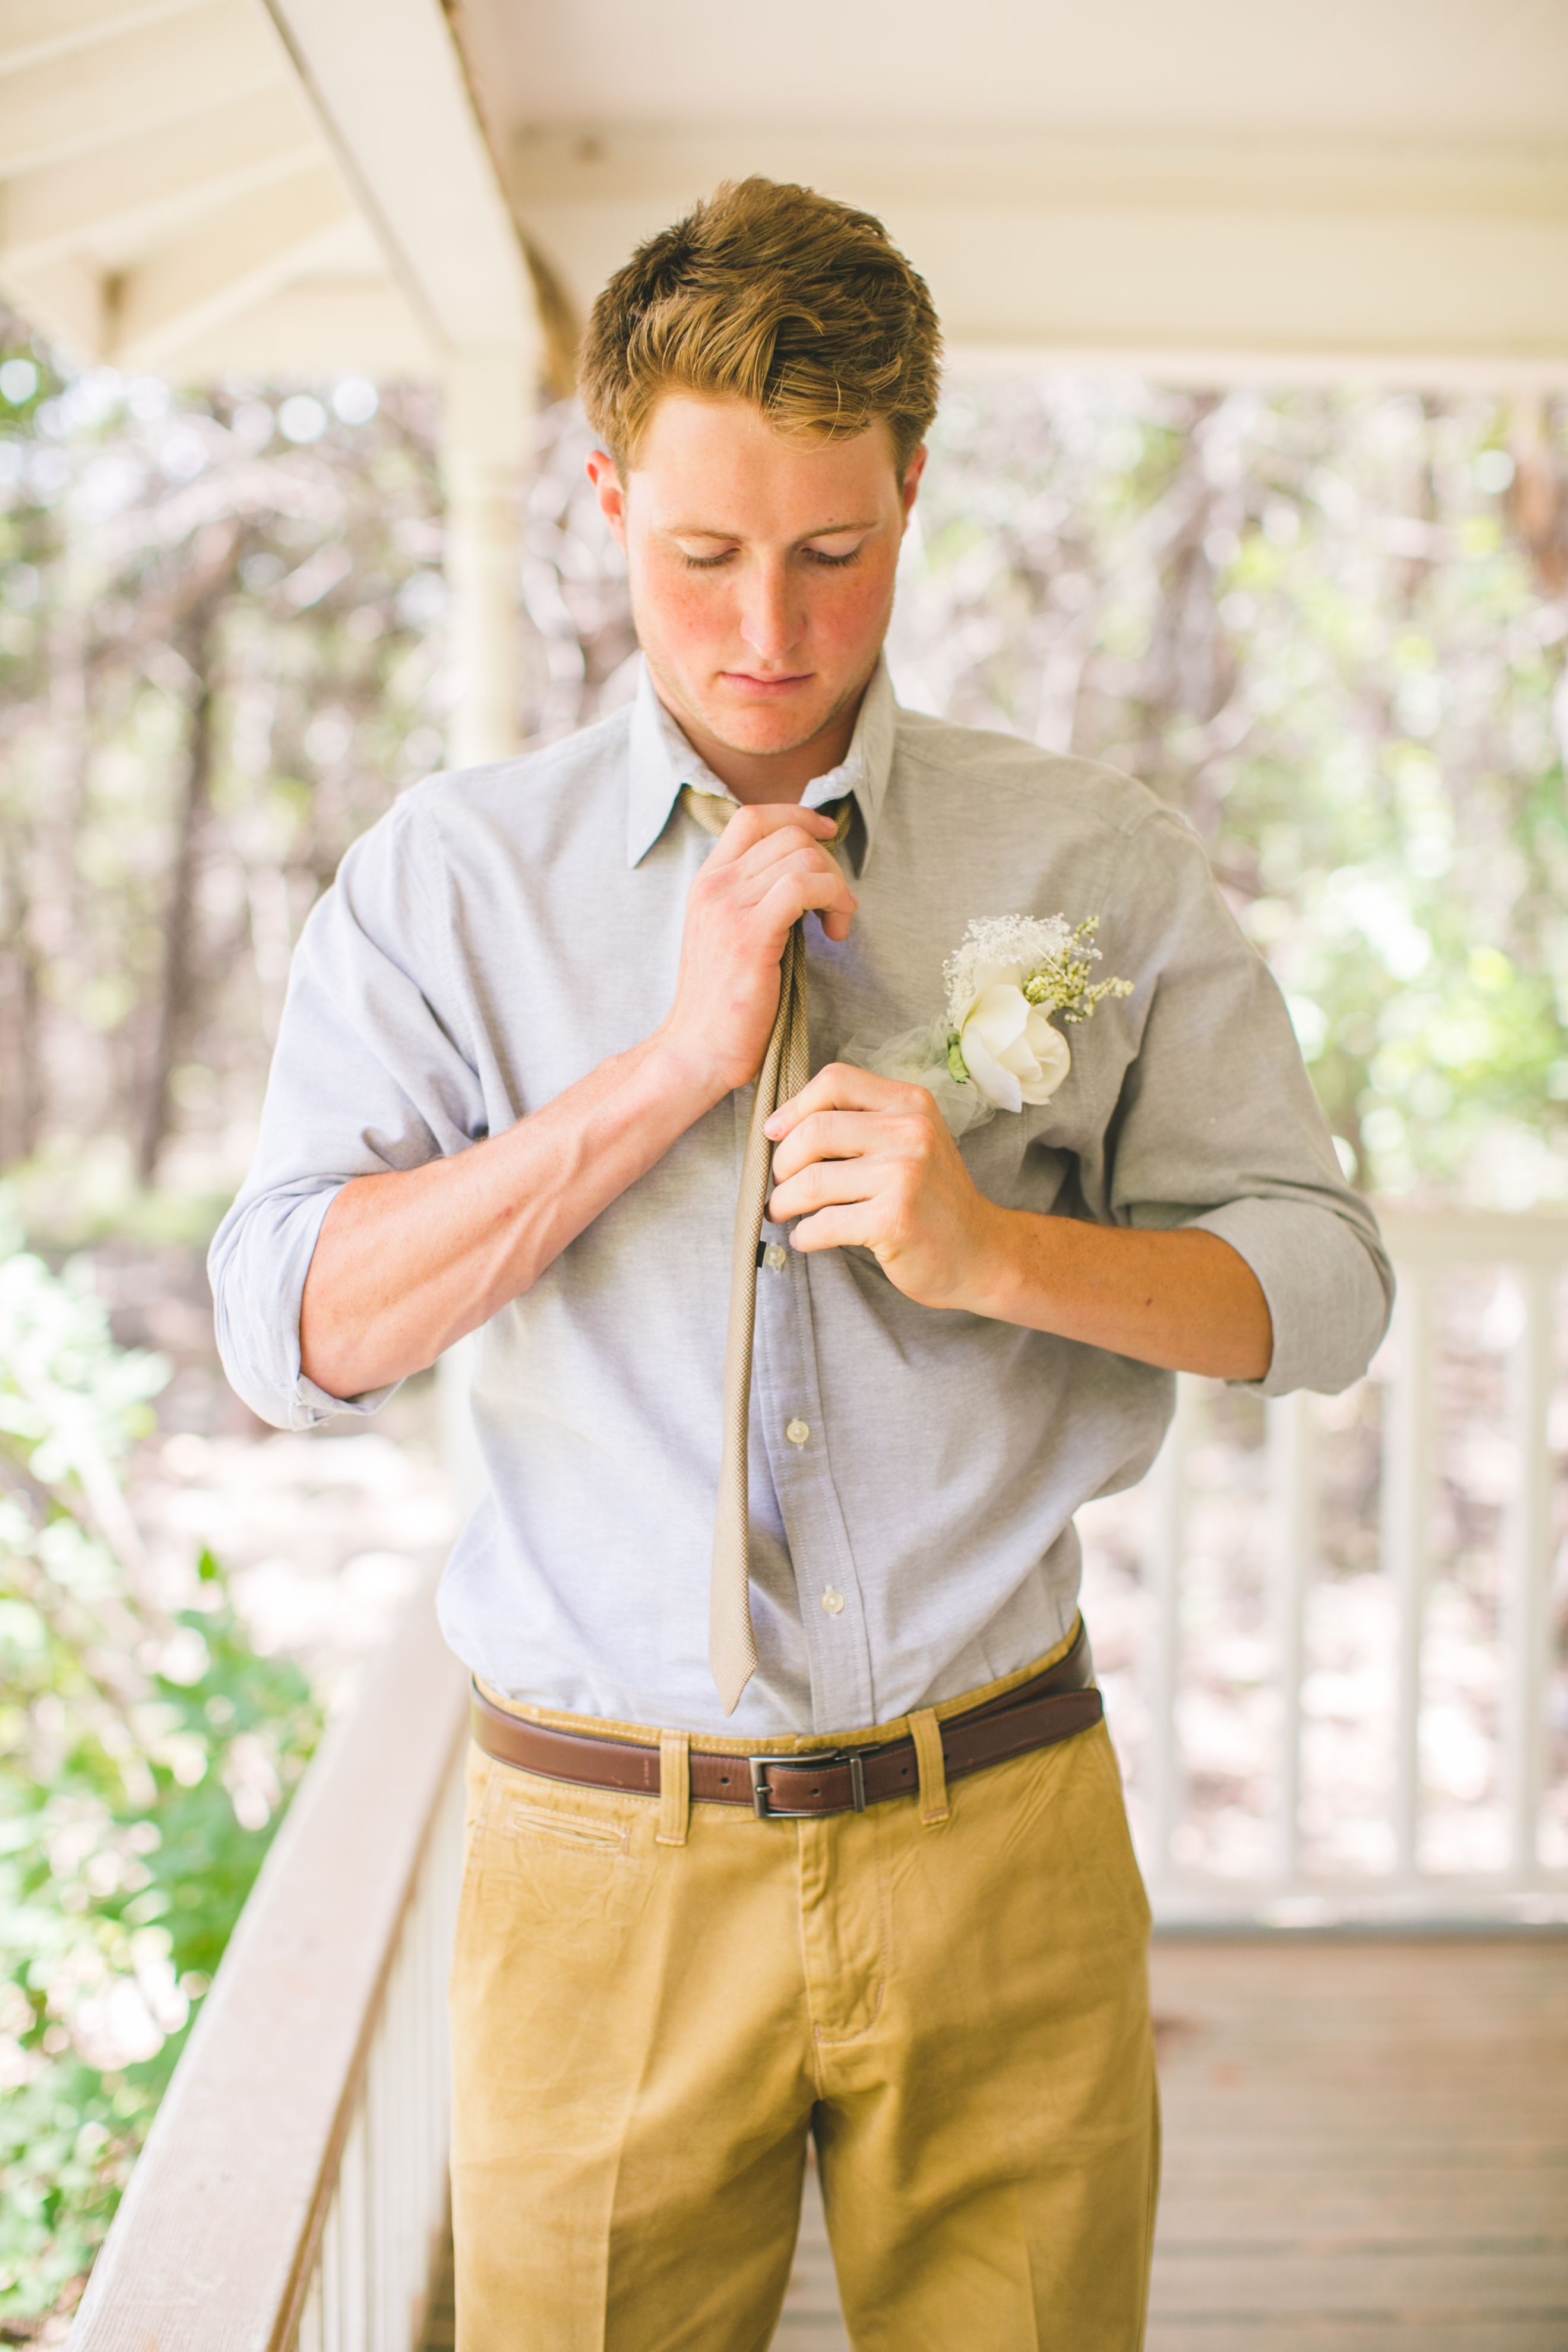 Casual groom attire for outdoor wedding  West Texas Wedding  Wedding Wedding attire Casual